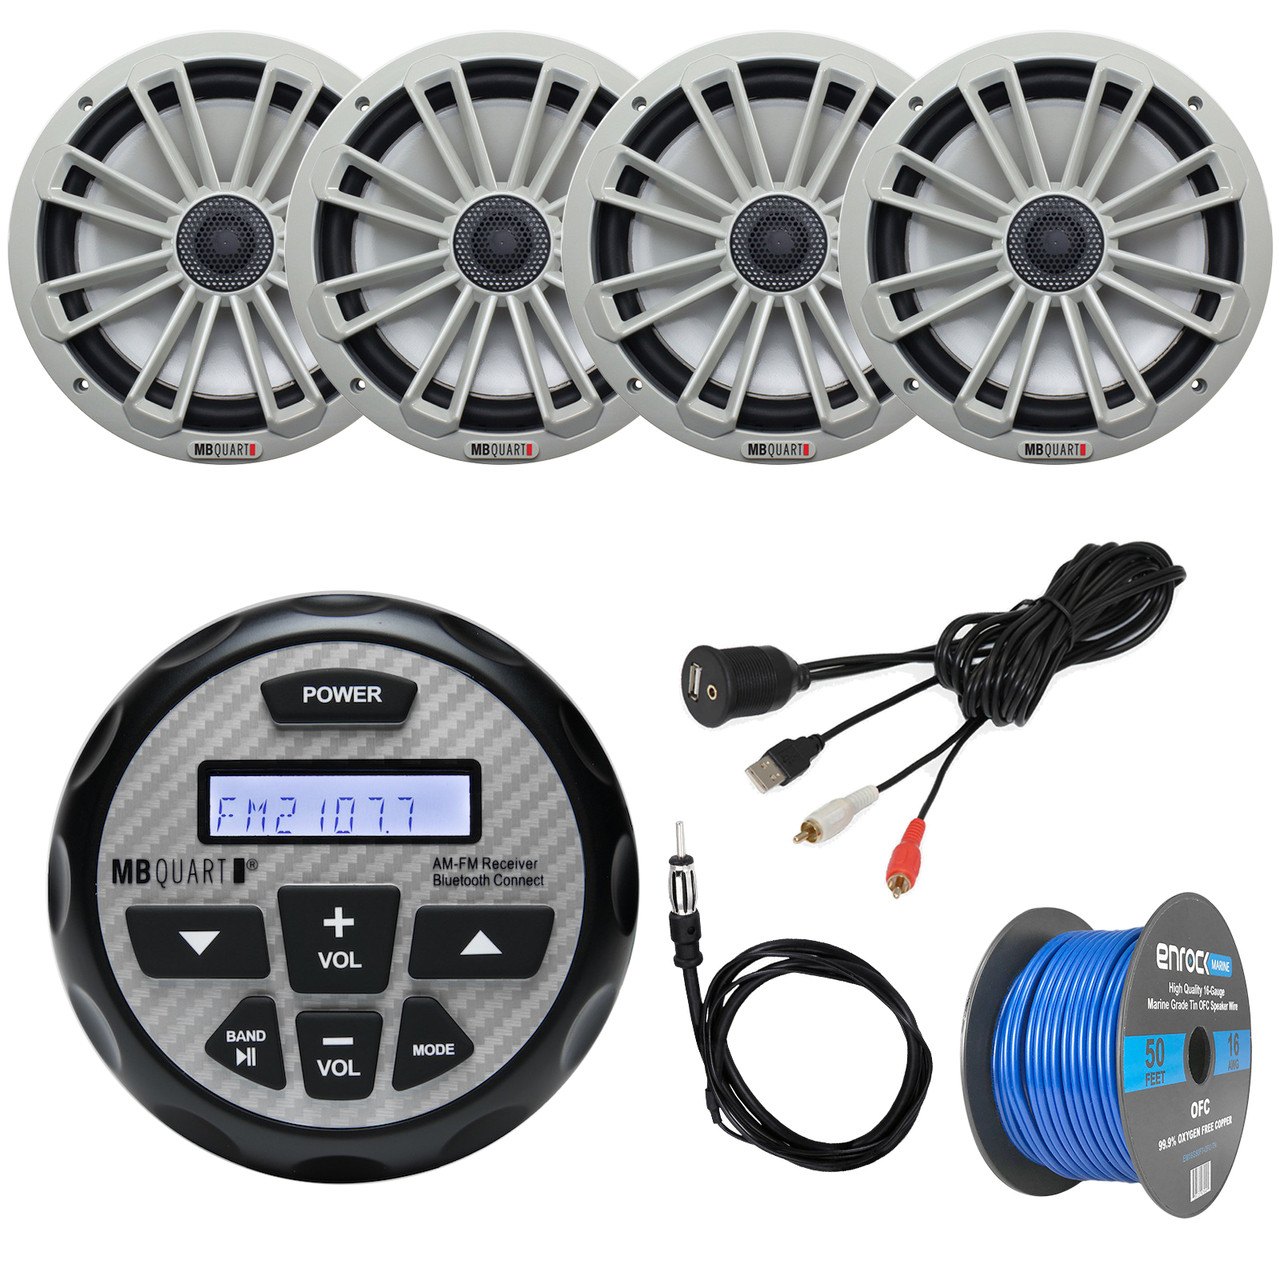 bay boat audio package mb quart gmr 2 5 waterproof am fm bluetooth gauge source unit receiver 2x 8 2 way coaxial marine speakers pair silver  [ 1280 x 1280 Pixel ]